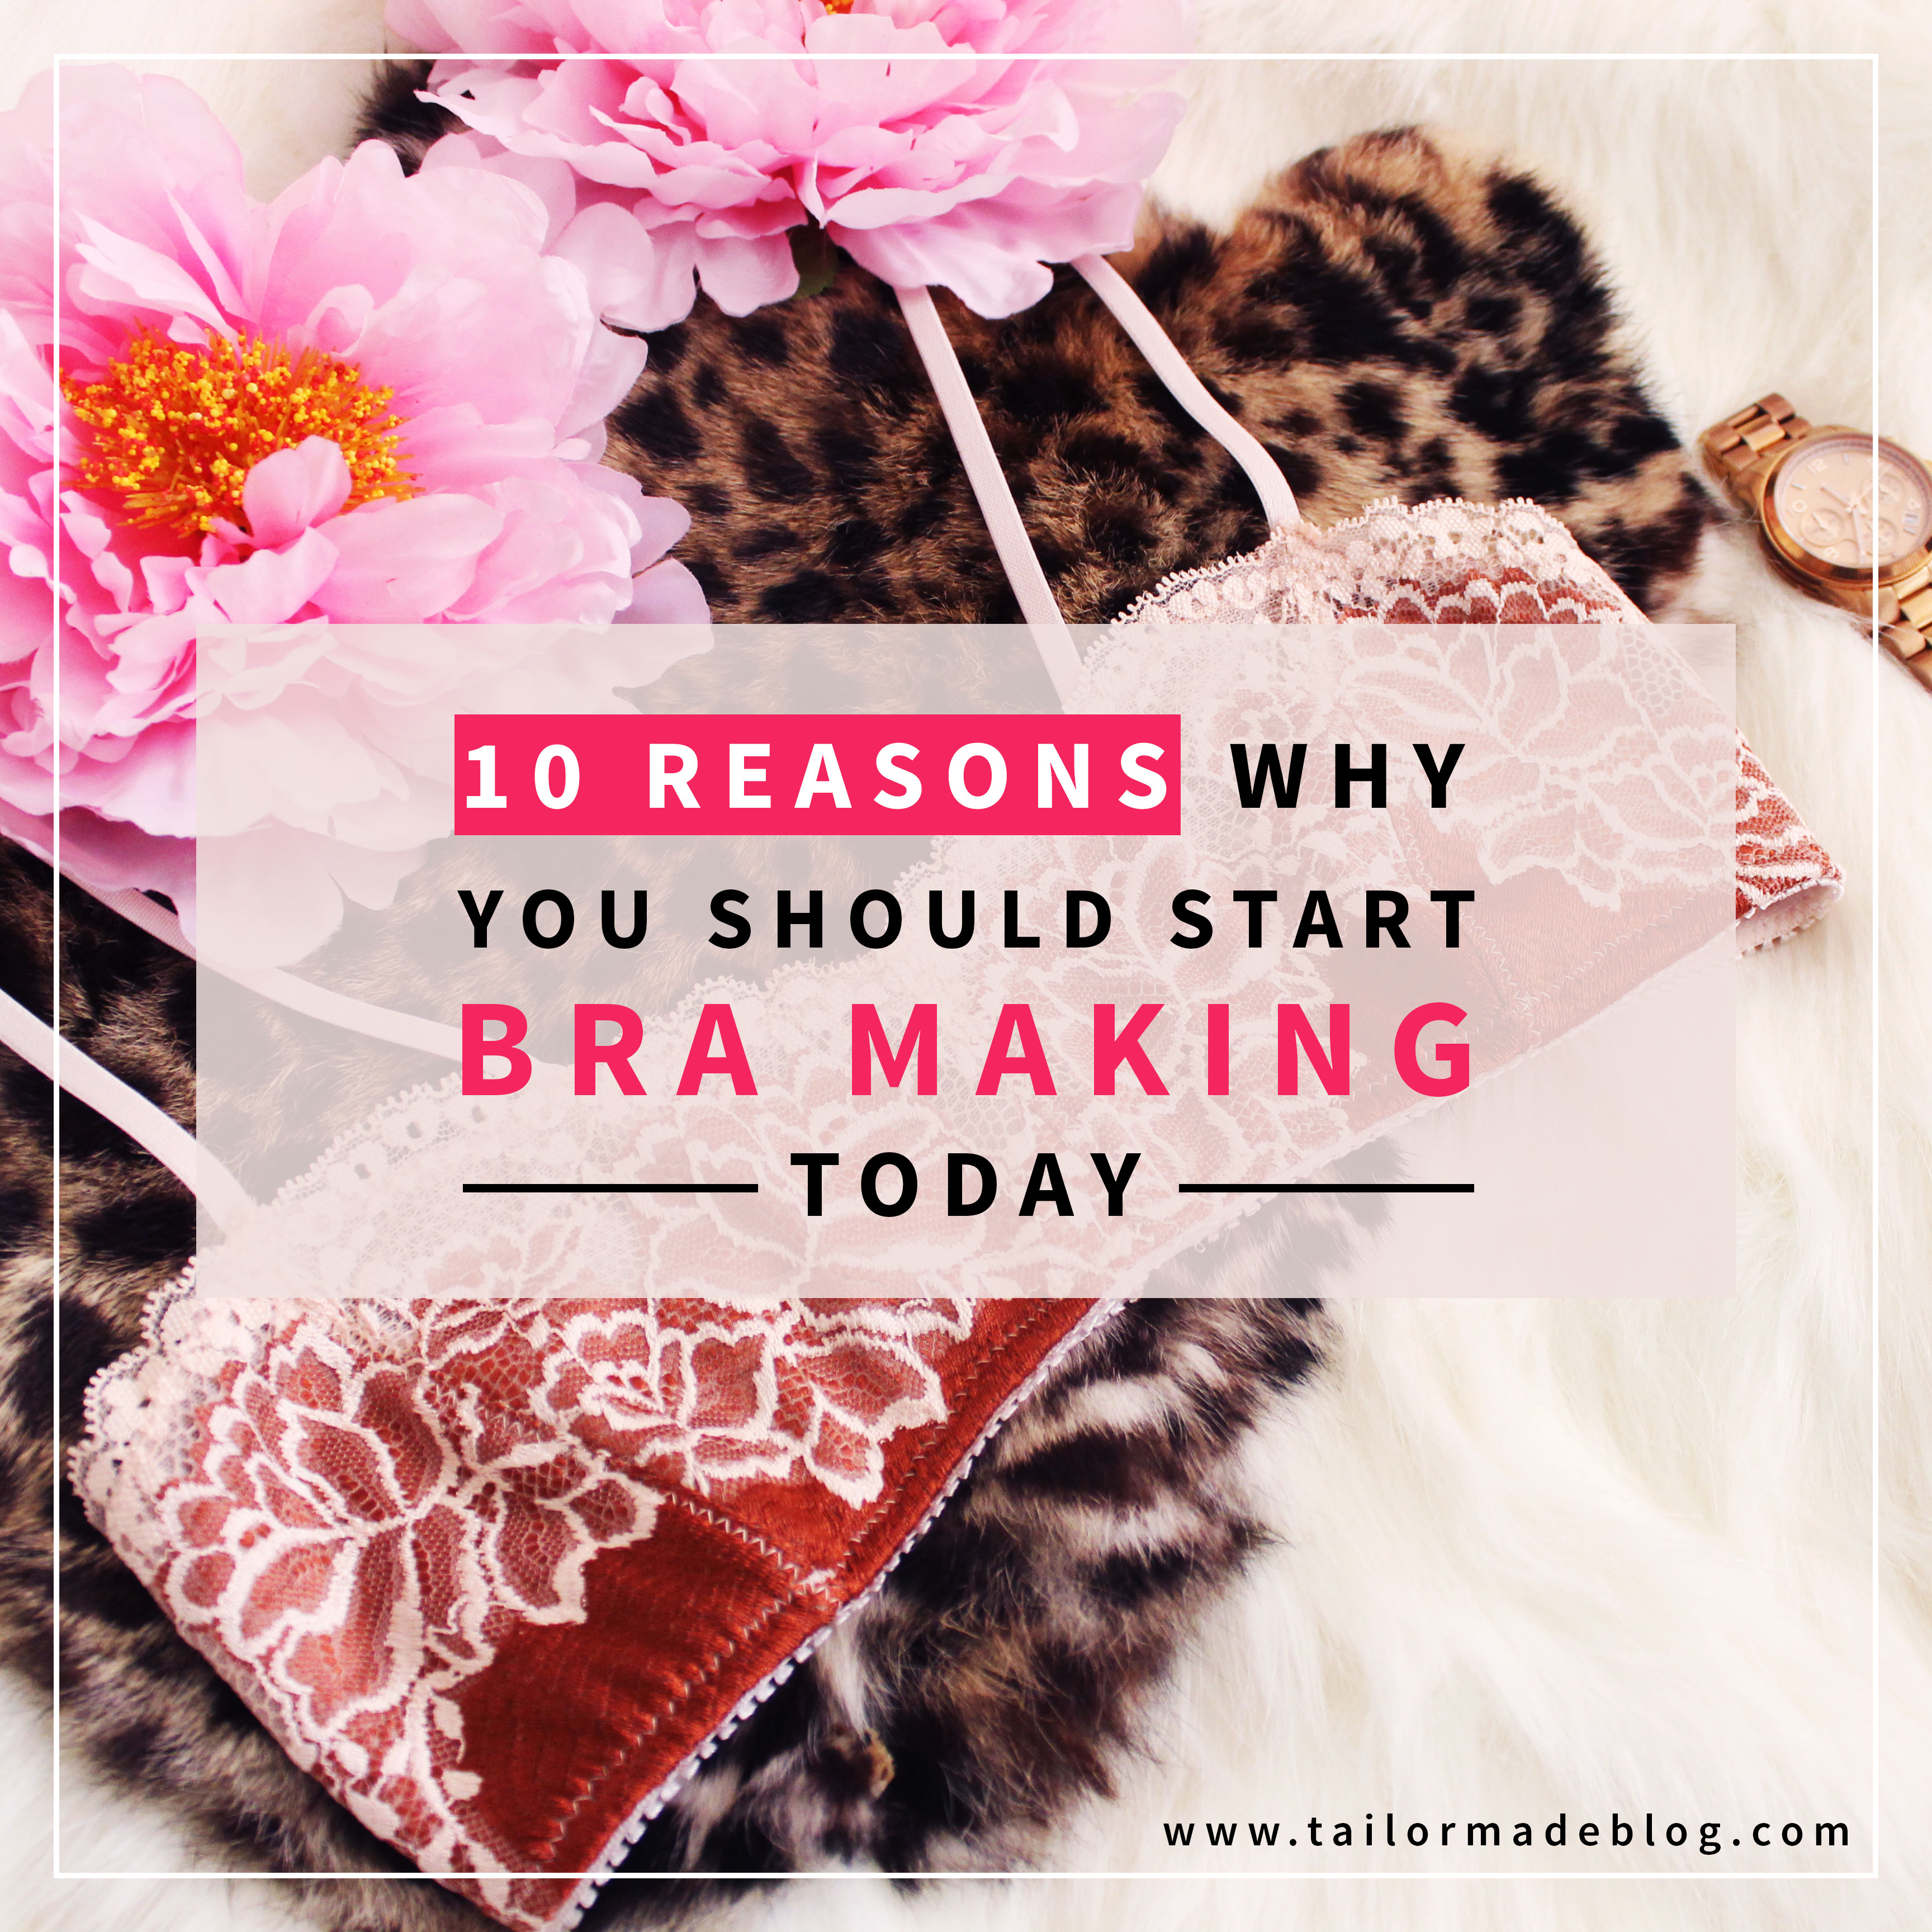 10 Reasons Why You Should Start Bra Making Today Getting Started with Bra Making Handmade Lingerie Sewing DIY